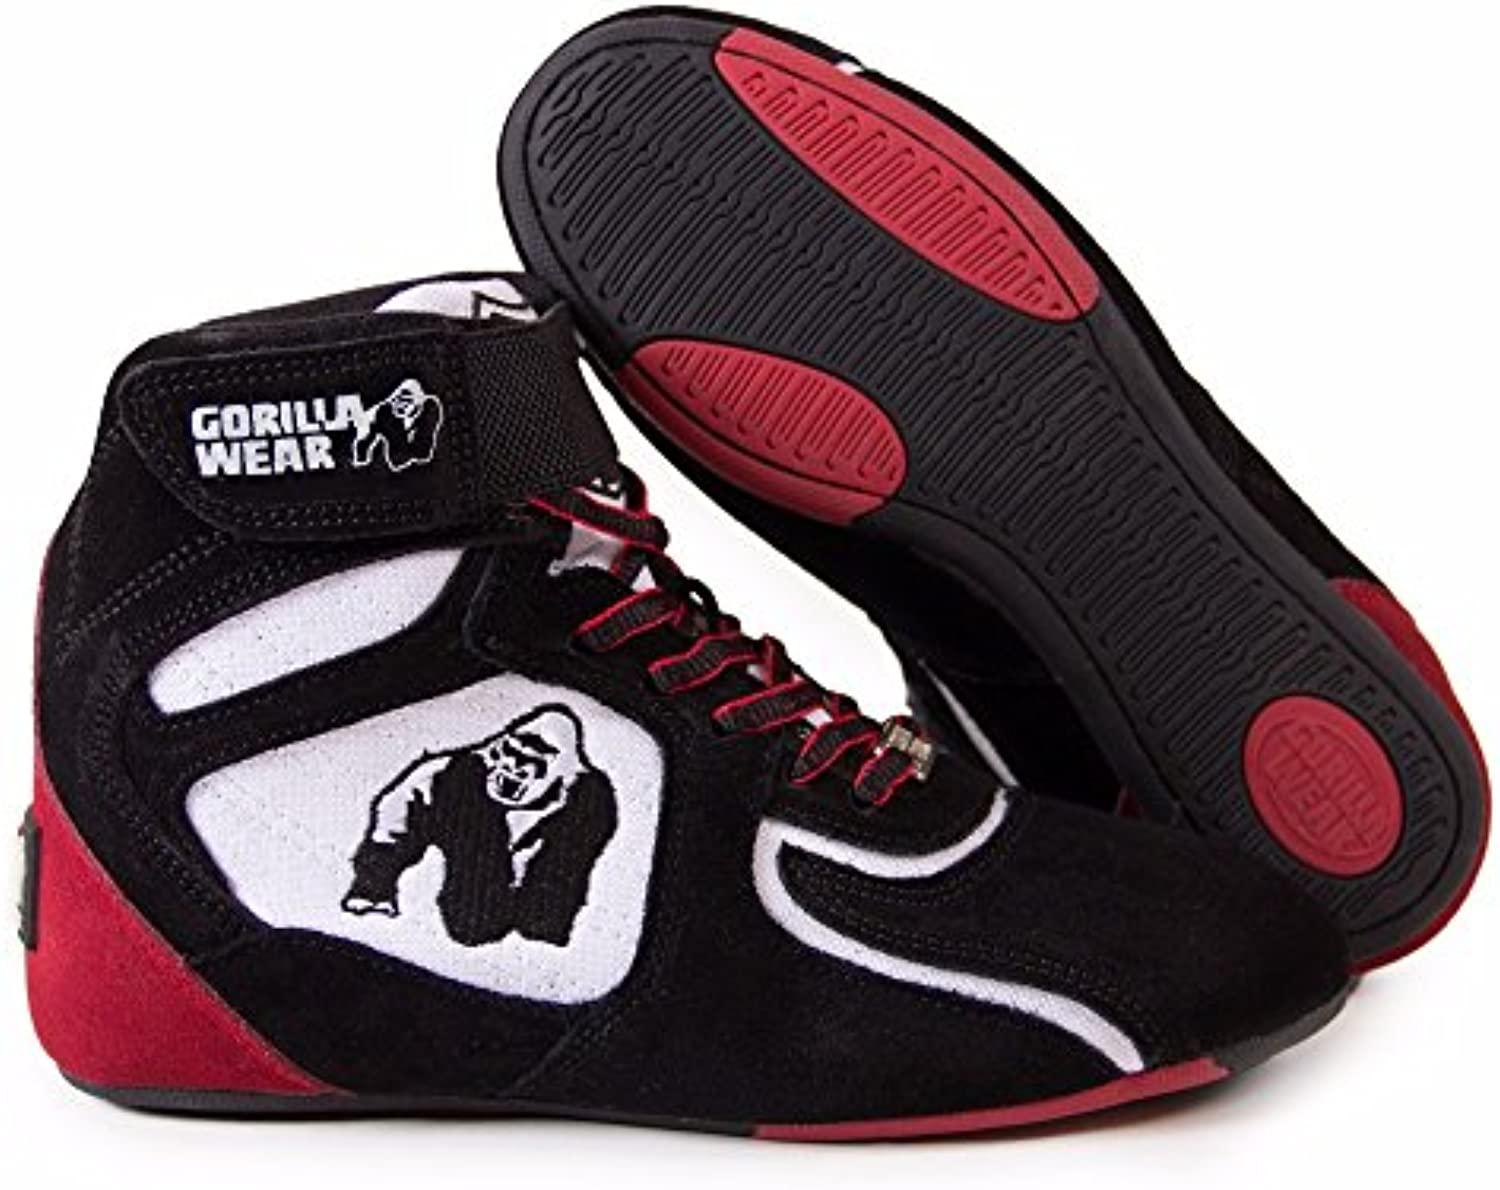 Gorilla Wear Chicago High Tops Black / White / Red   Limited Edition  EU 47